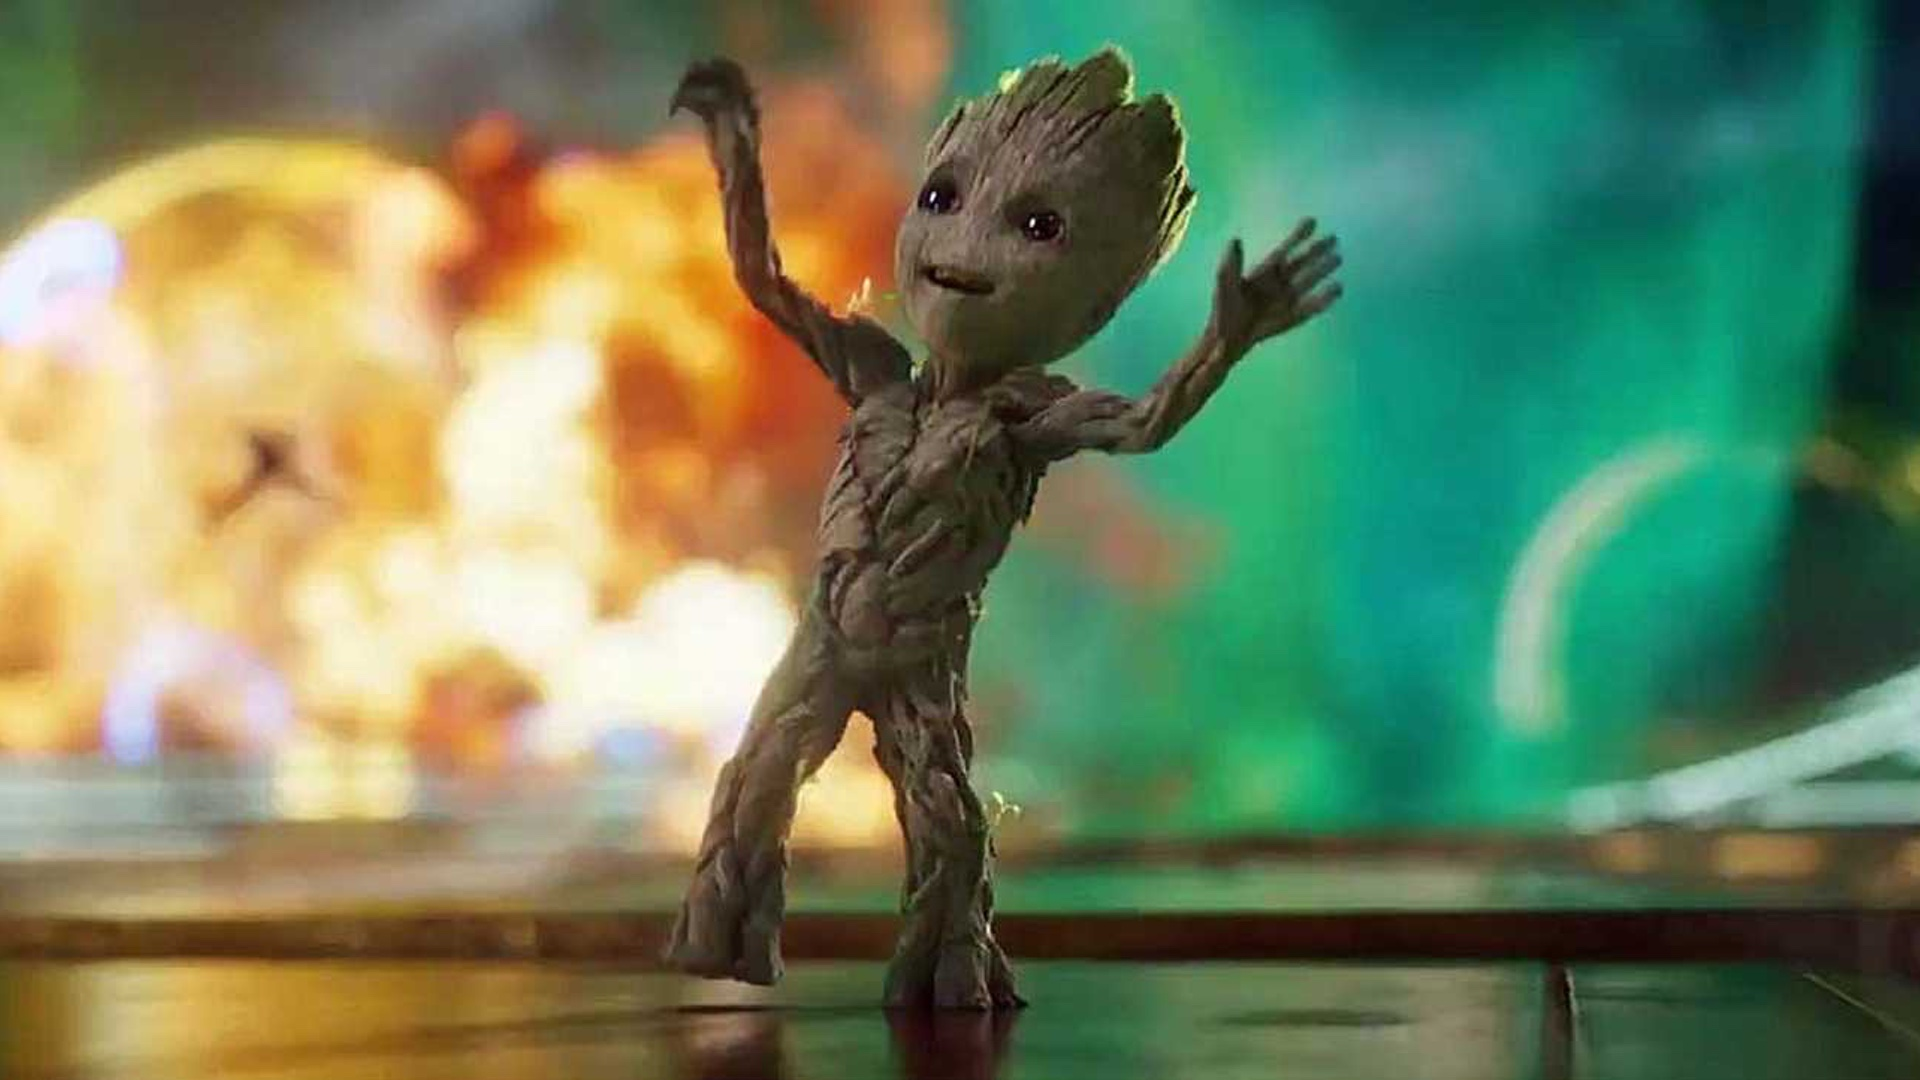 As You May Have Already Heard The Wonderful Baby Groot Dance At The Beginning Of Guardians Of The Galaxy Vol  Actually Came From A Video That James Gunn